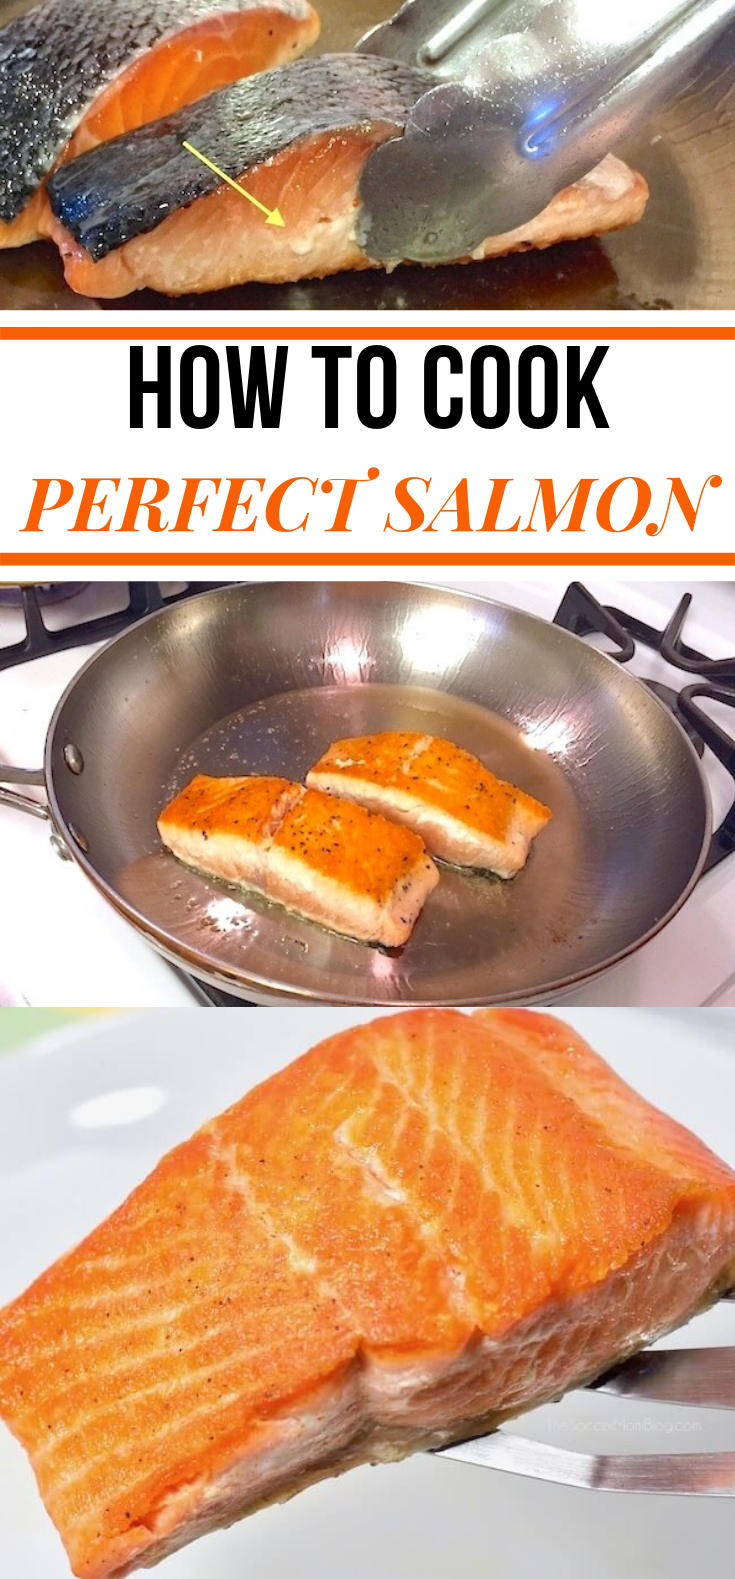 How to Cook Restaurant Style Salmon at Home #DIY #Dinner